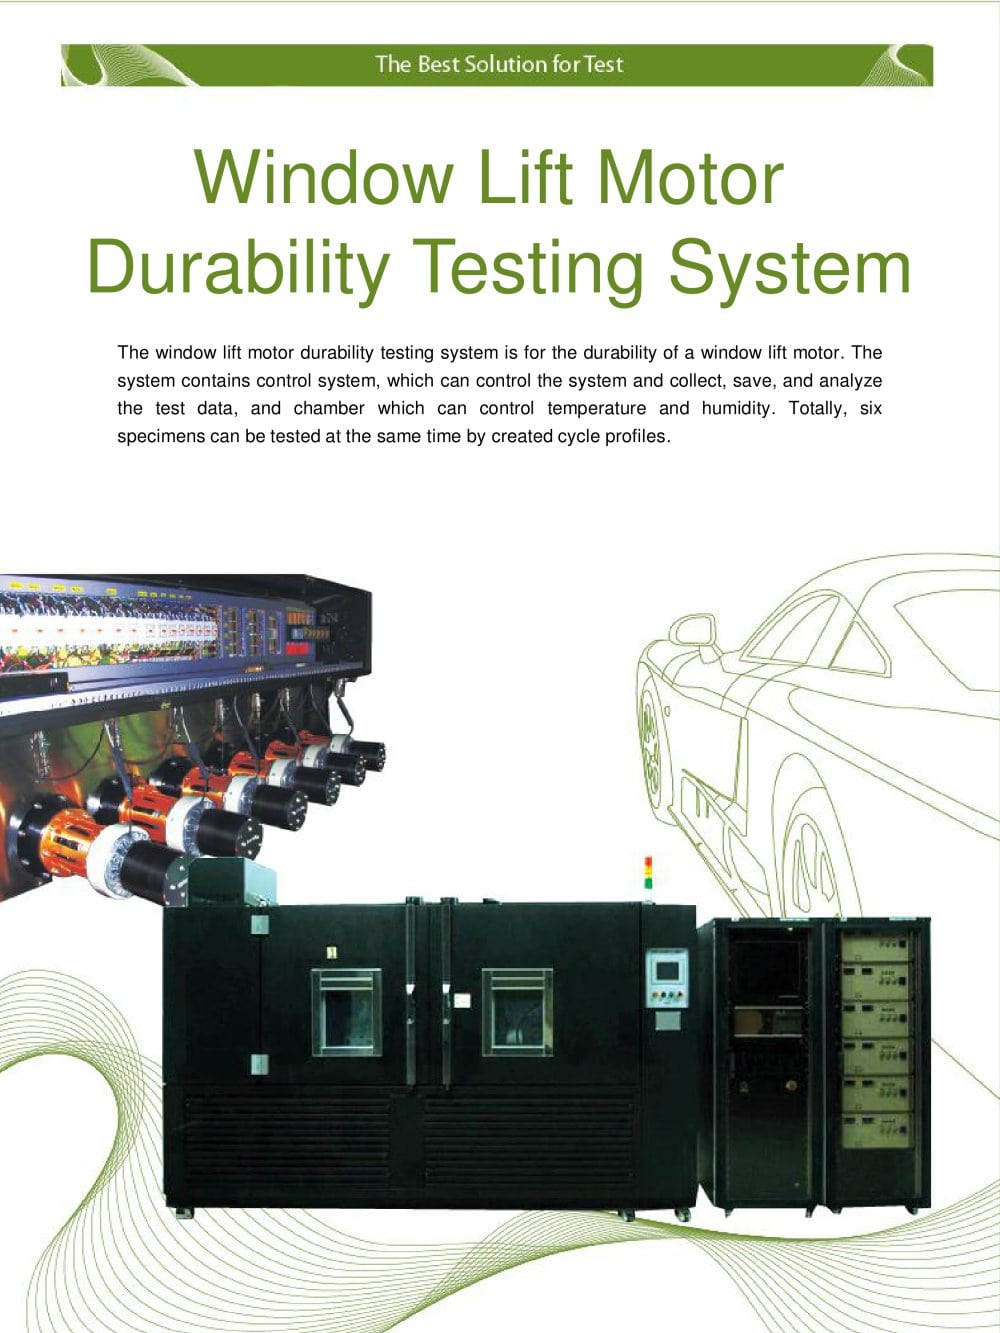 Motor Environment Durability Testing System Knr Pdf Electronic Circuit 1 4 Pages